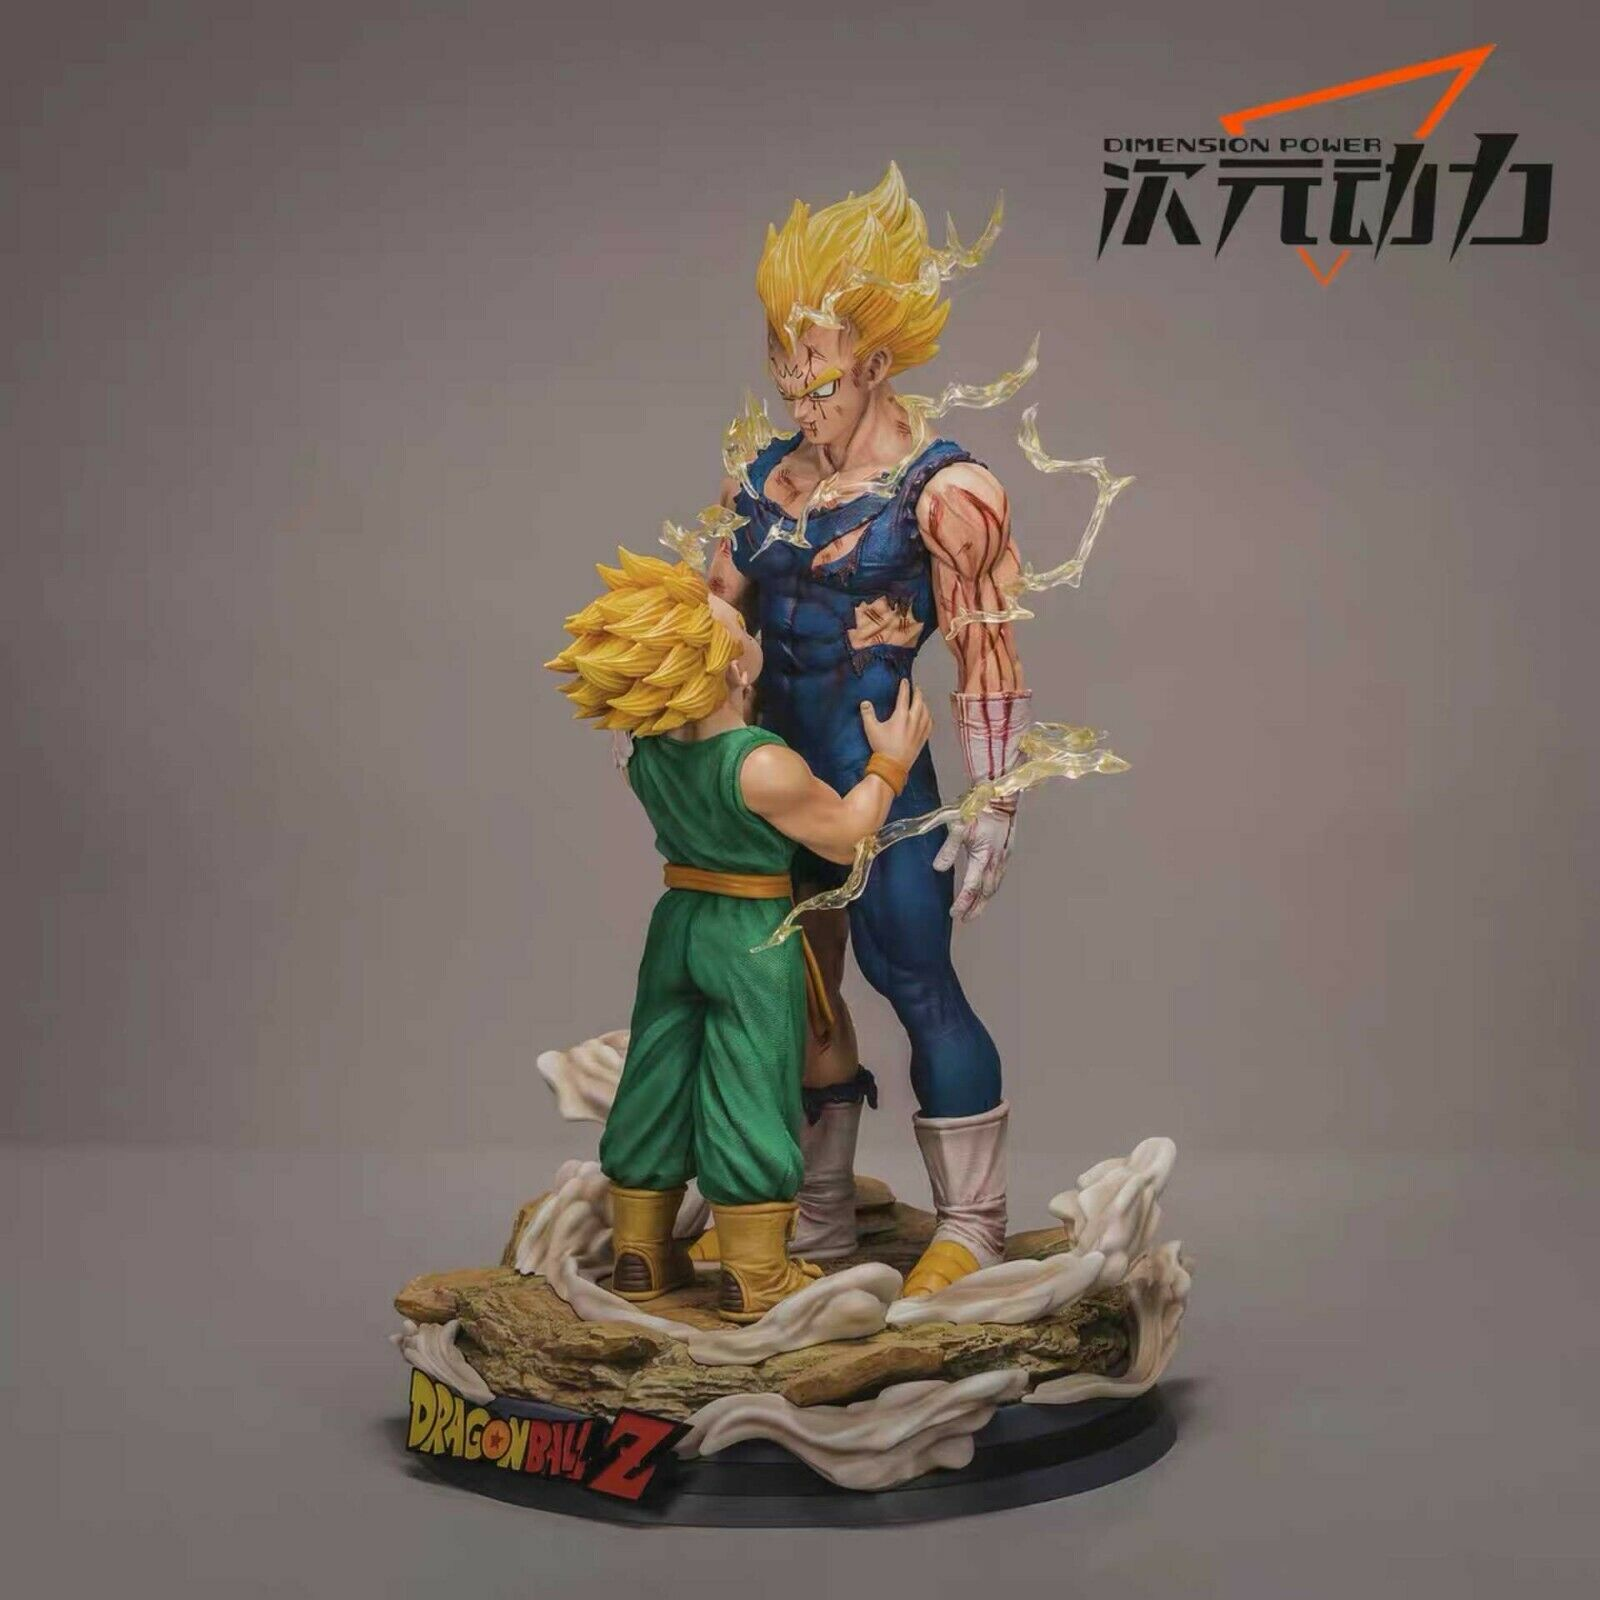 DIMWNSION POWER Studio Dragon Ball Super Vegeta&Trunks Resin Statue